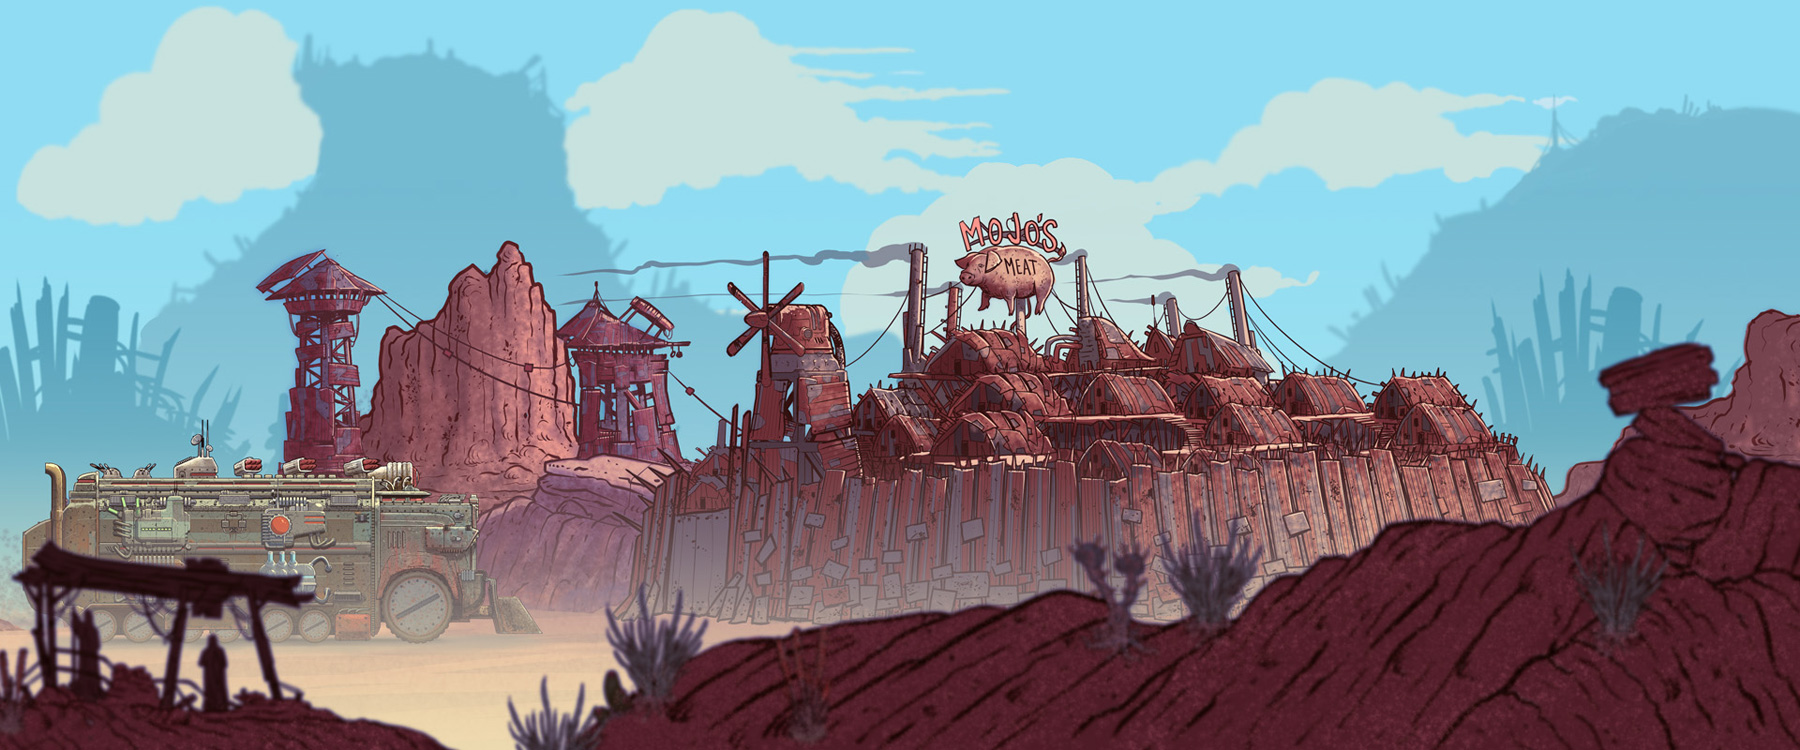 BEDLAM Concept Art and Illustrations